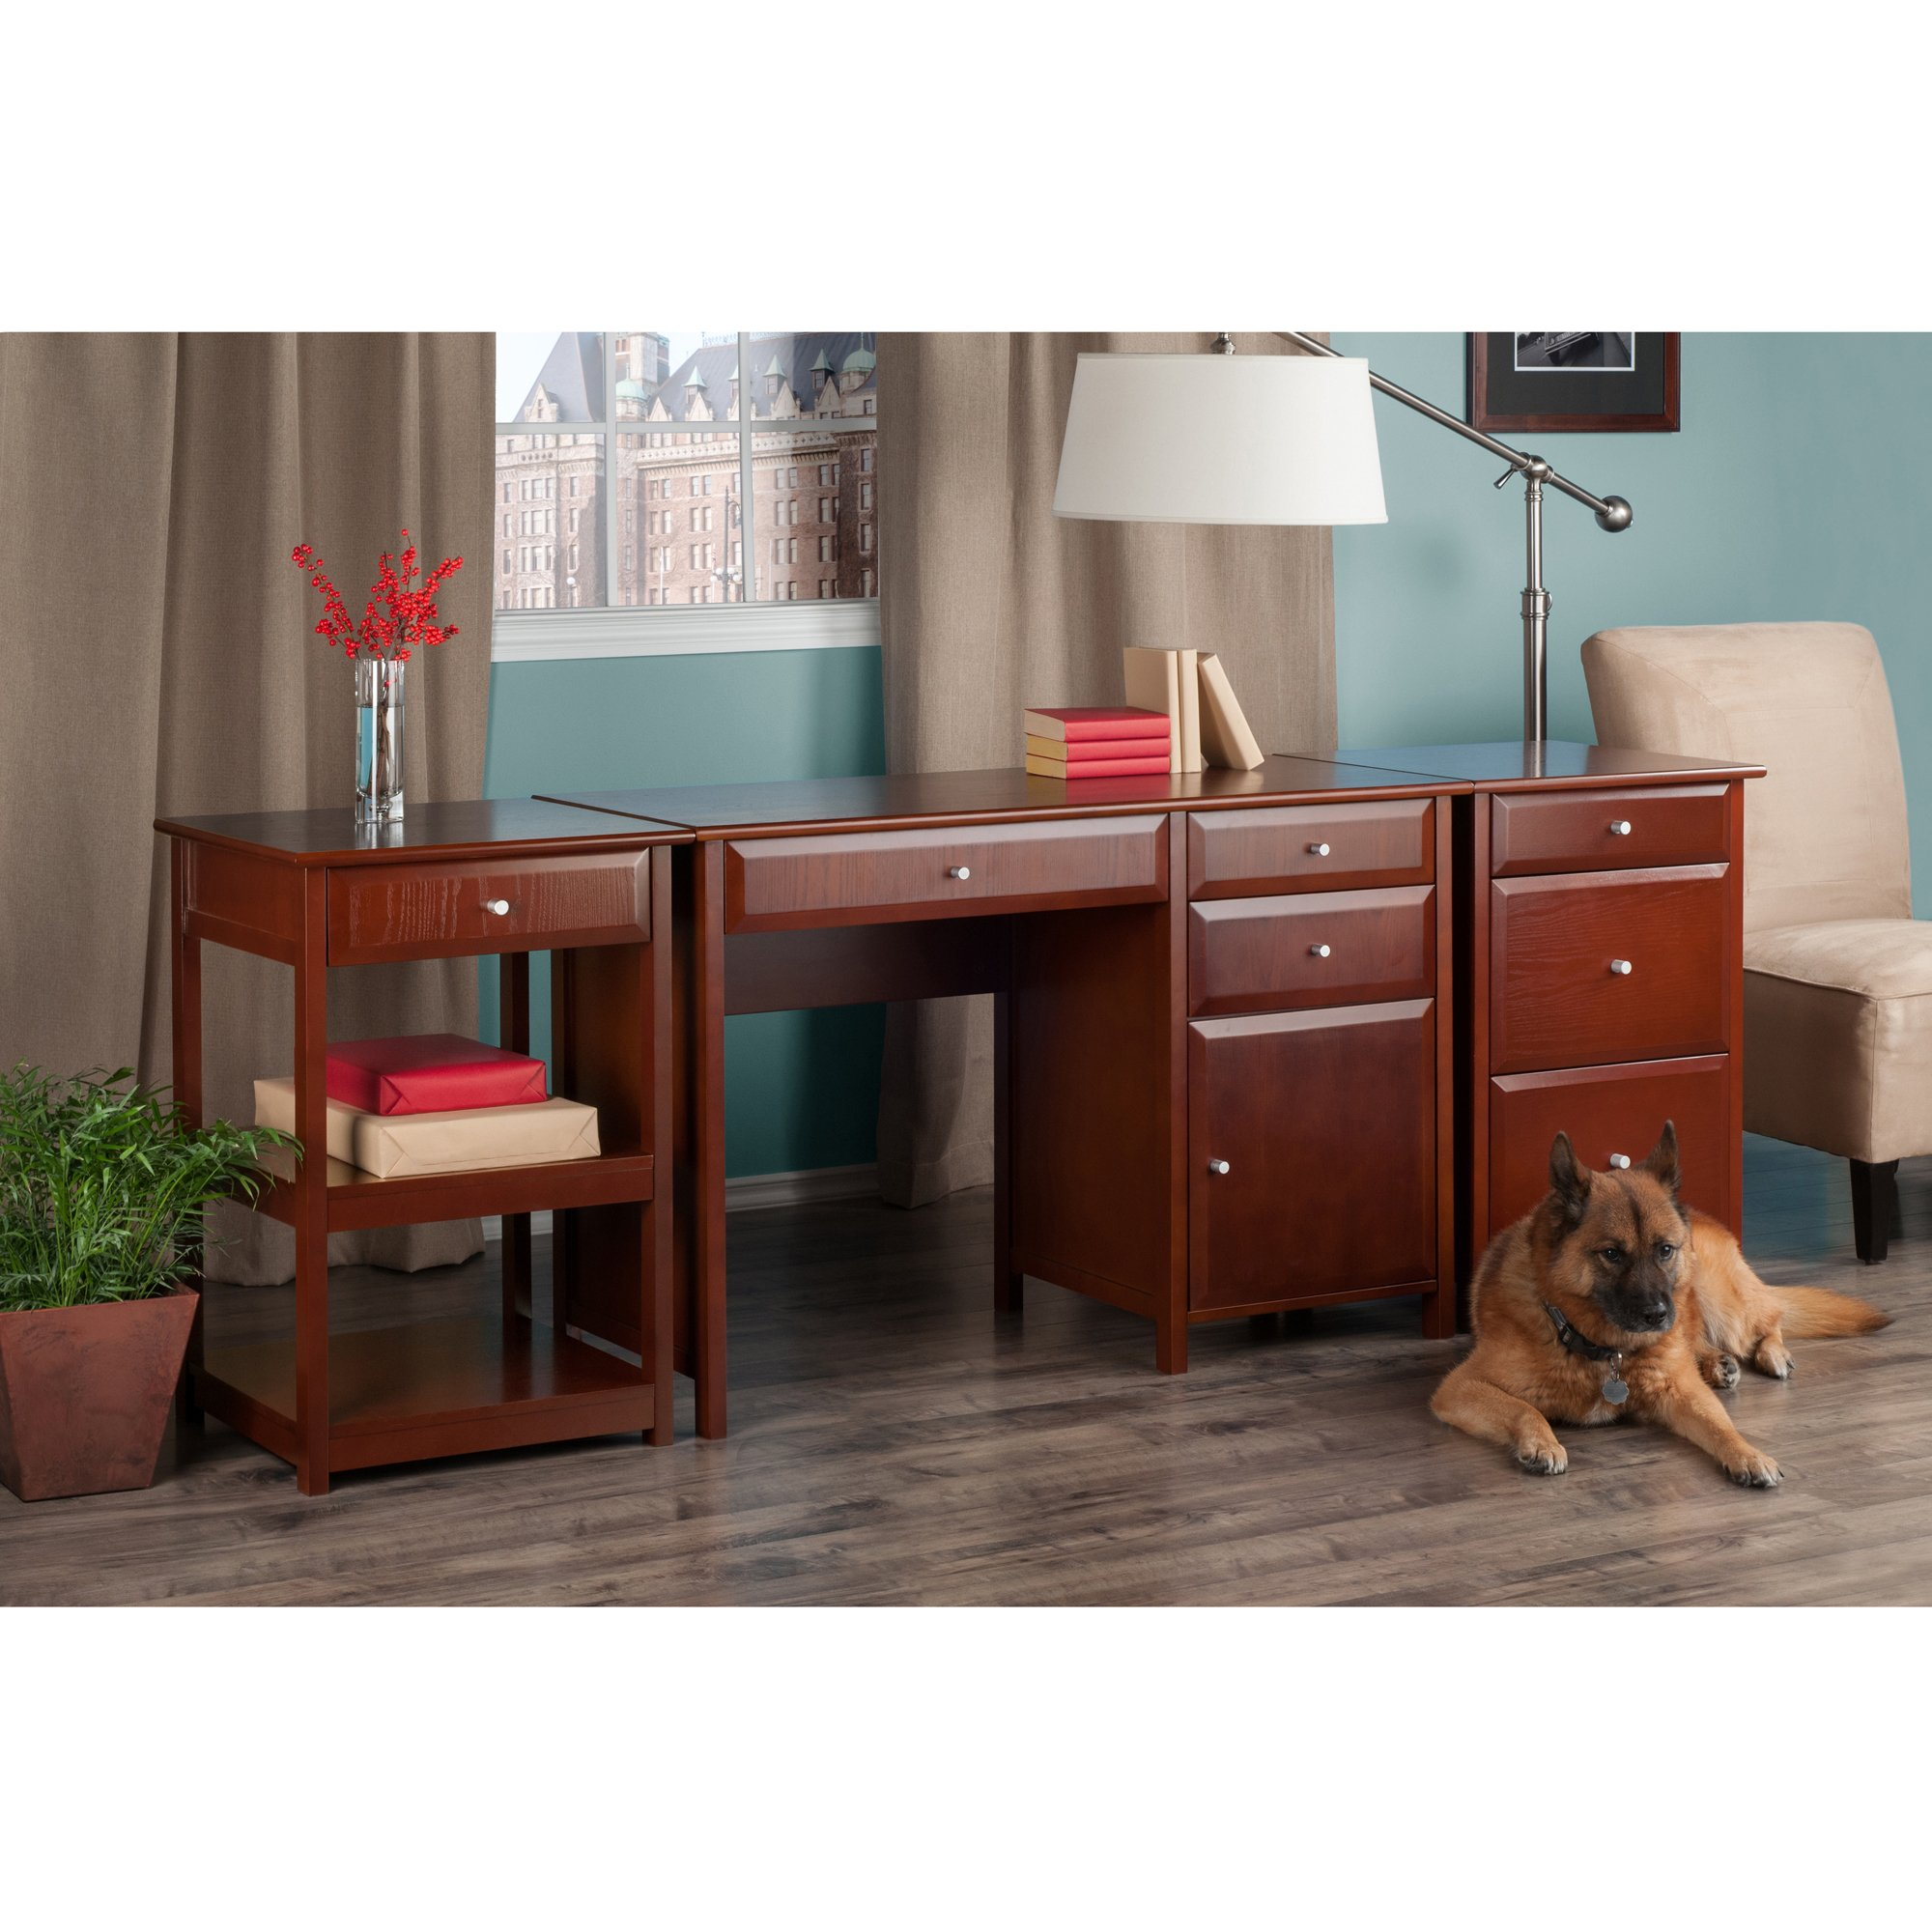 Winsome Wood 94321-WW Delta Home Office, Walnut by Winsome Wood (Image #6)